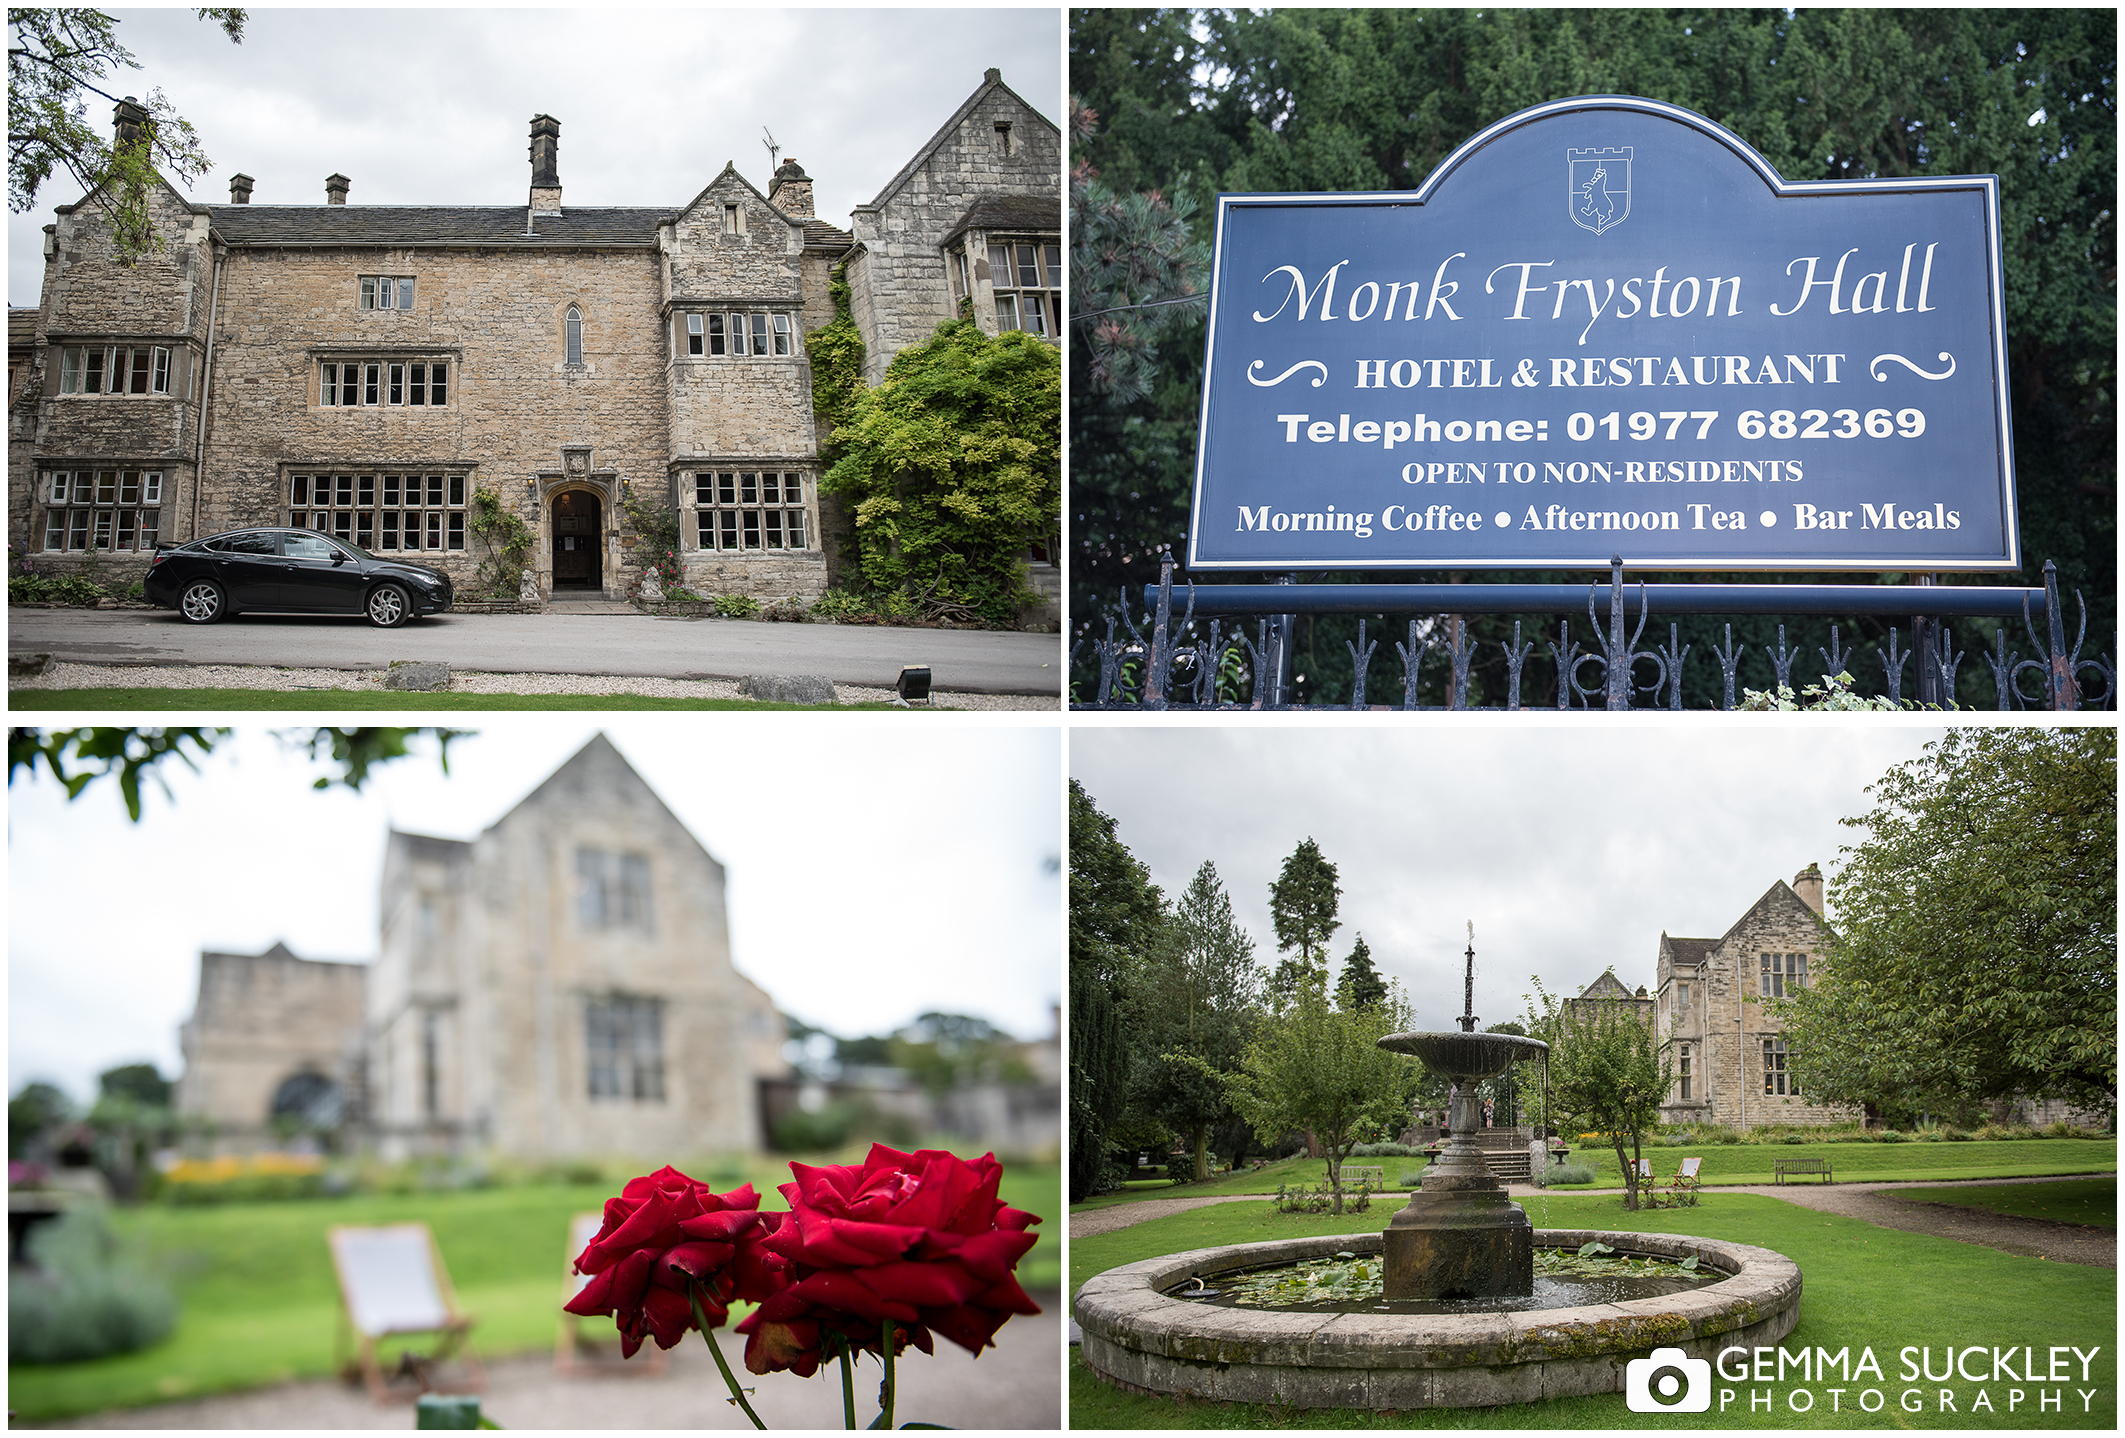 Monk Fryston Hall in Yorkshire